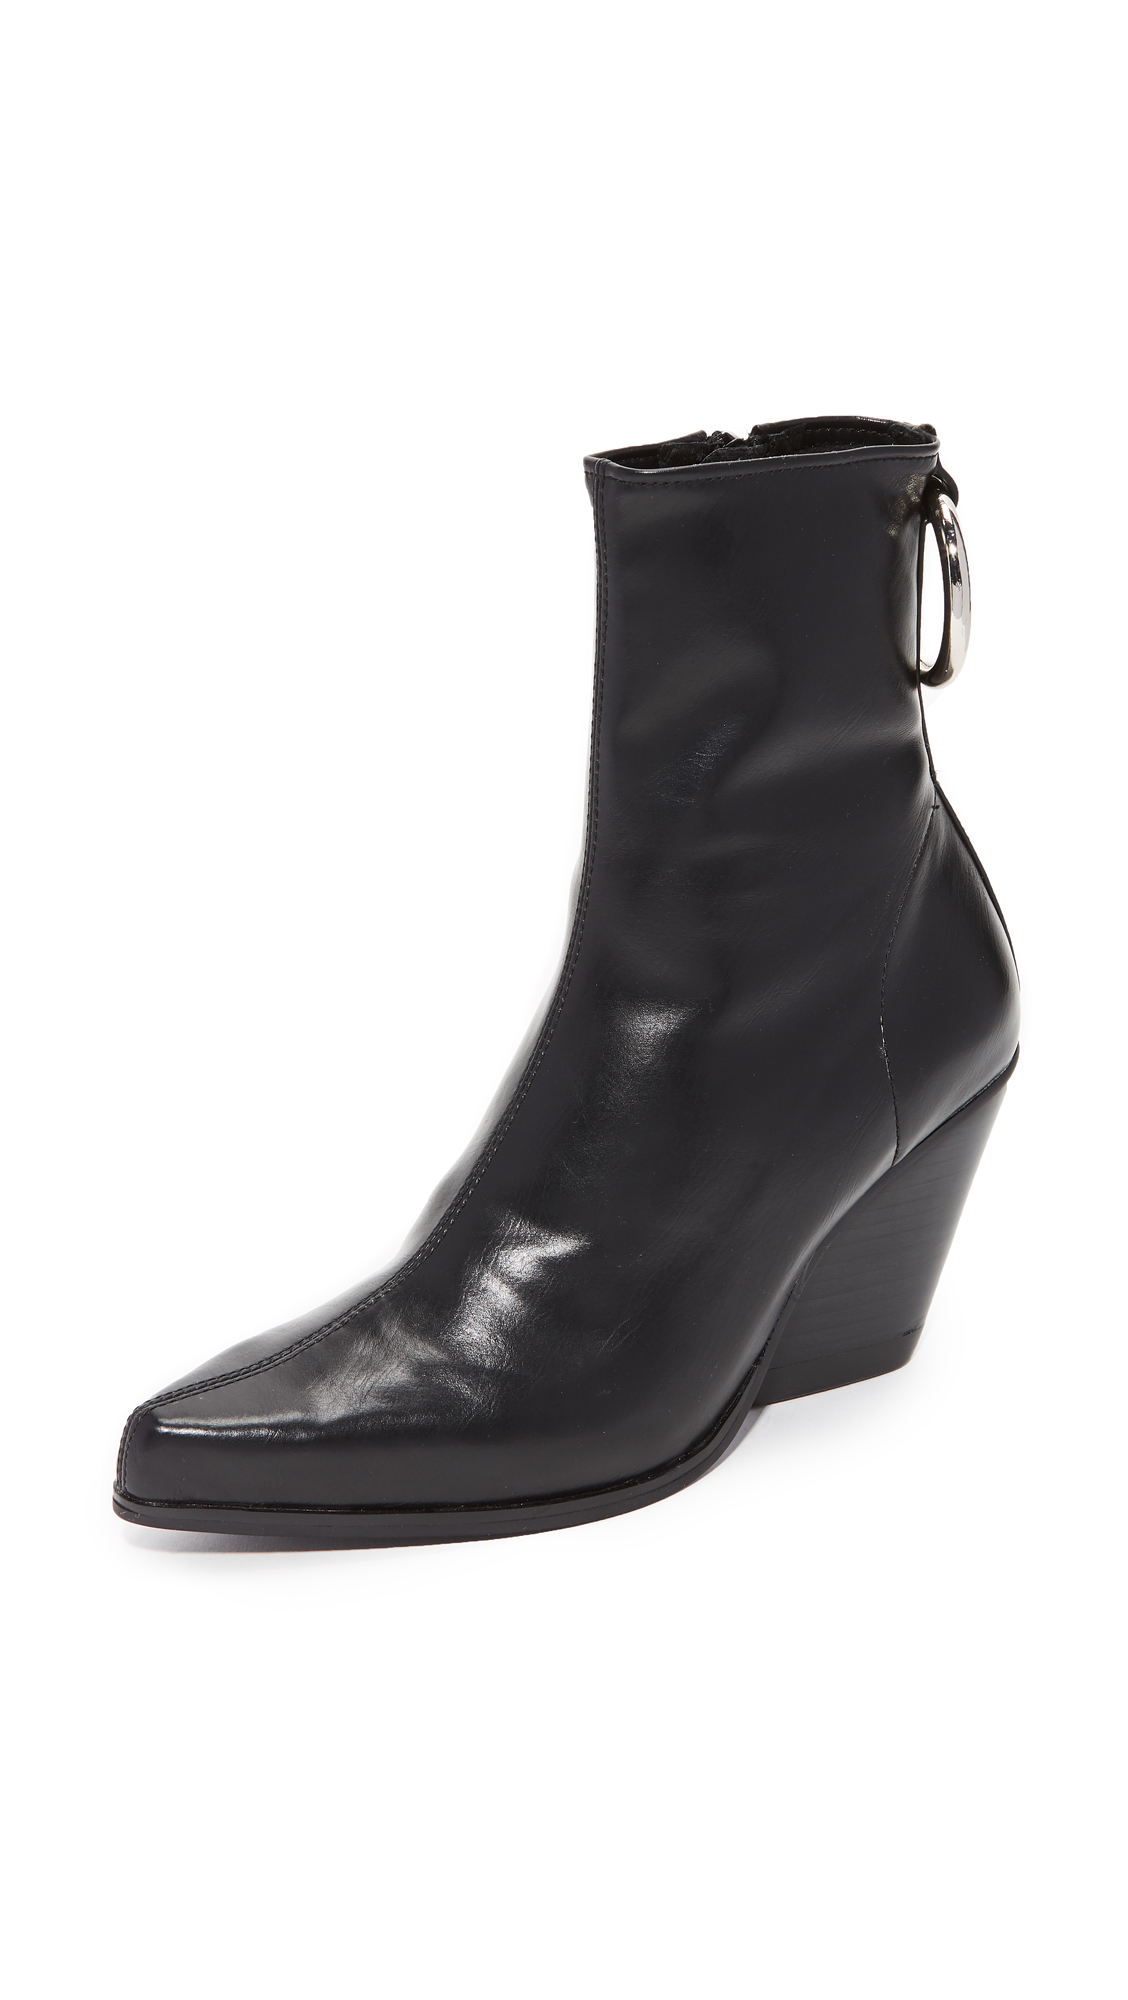 Jeffrey Campbell Walton Block Heel Pointed Booties - Black